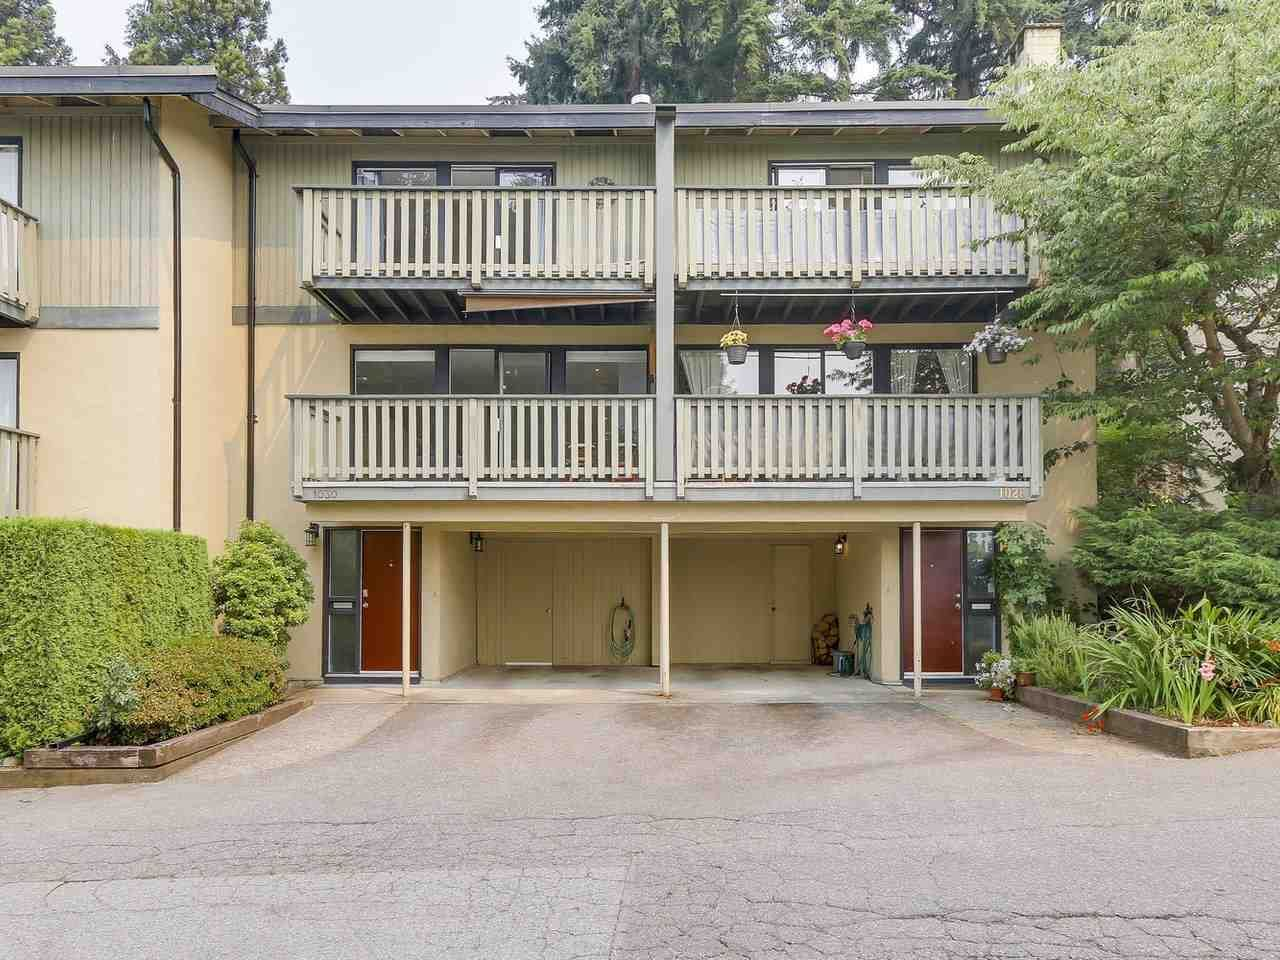 """Main Photo: 1030 LILLOOET Road in North Vancouver: Lynnmour Townhouse for sale in """"Lynnmour Place"""" : MLS®# R2195623"""